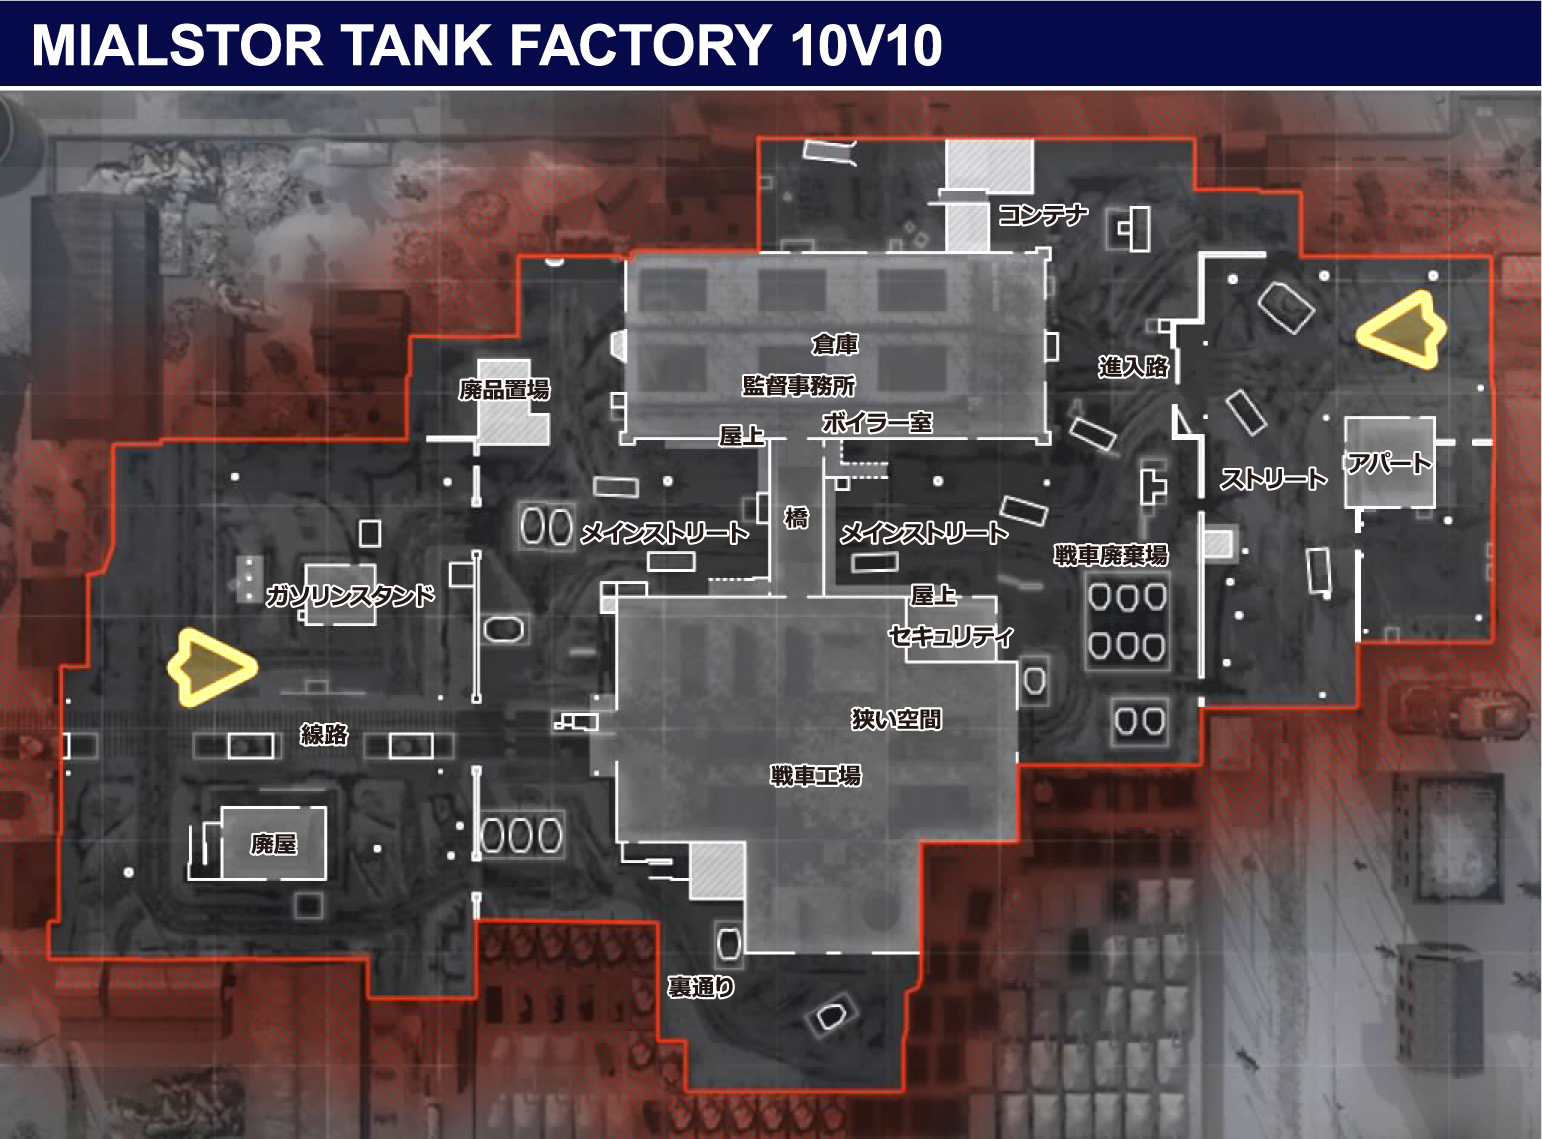 MIALSTOR-TANK-FACTORY-10V10-map